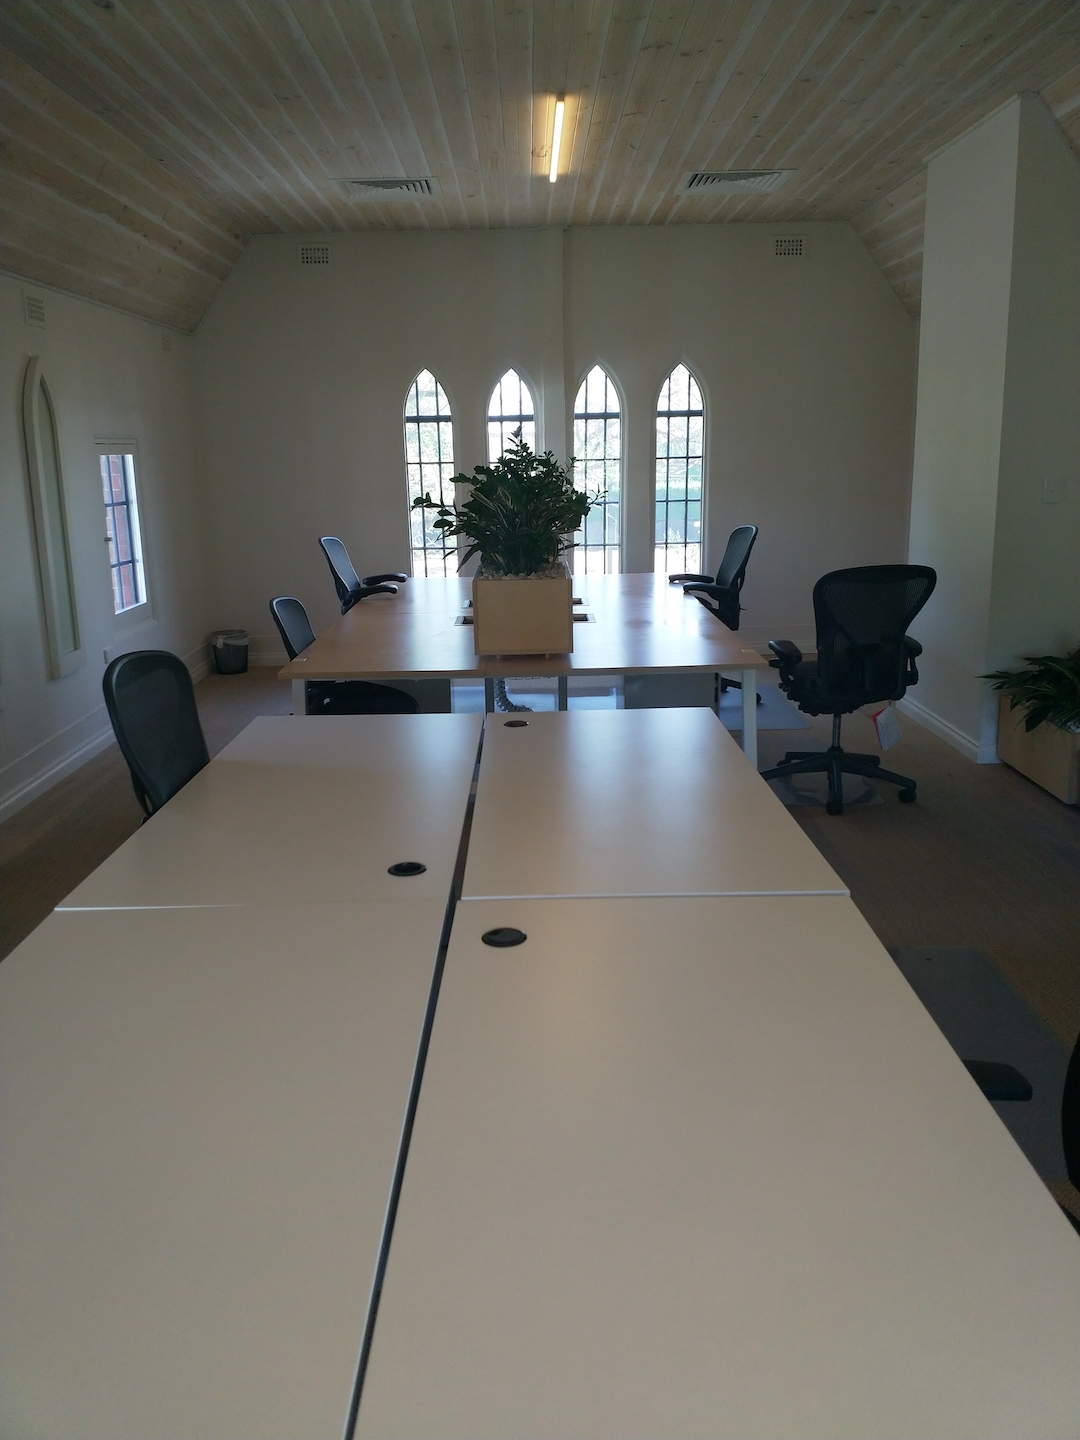 Upstairs chapel office